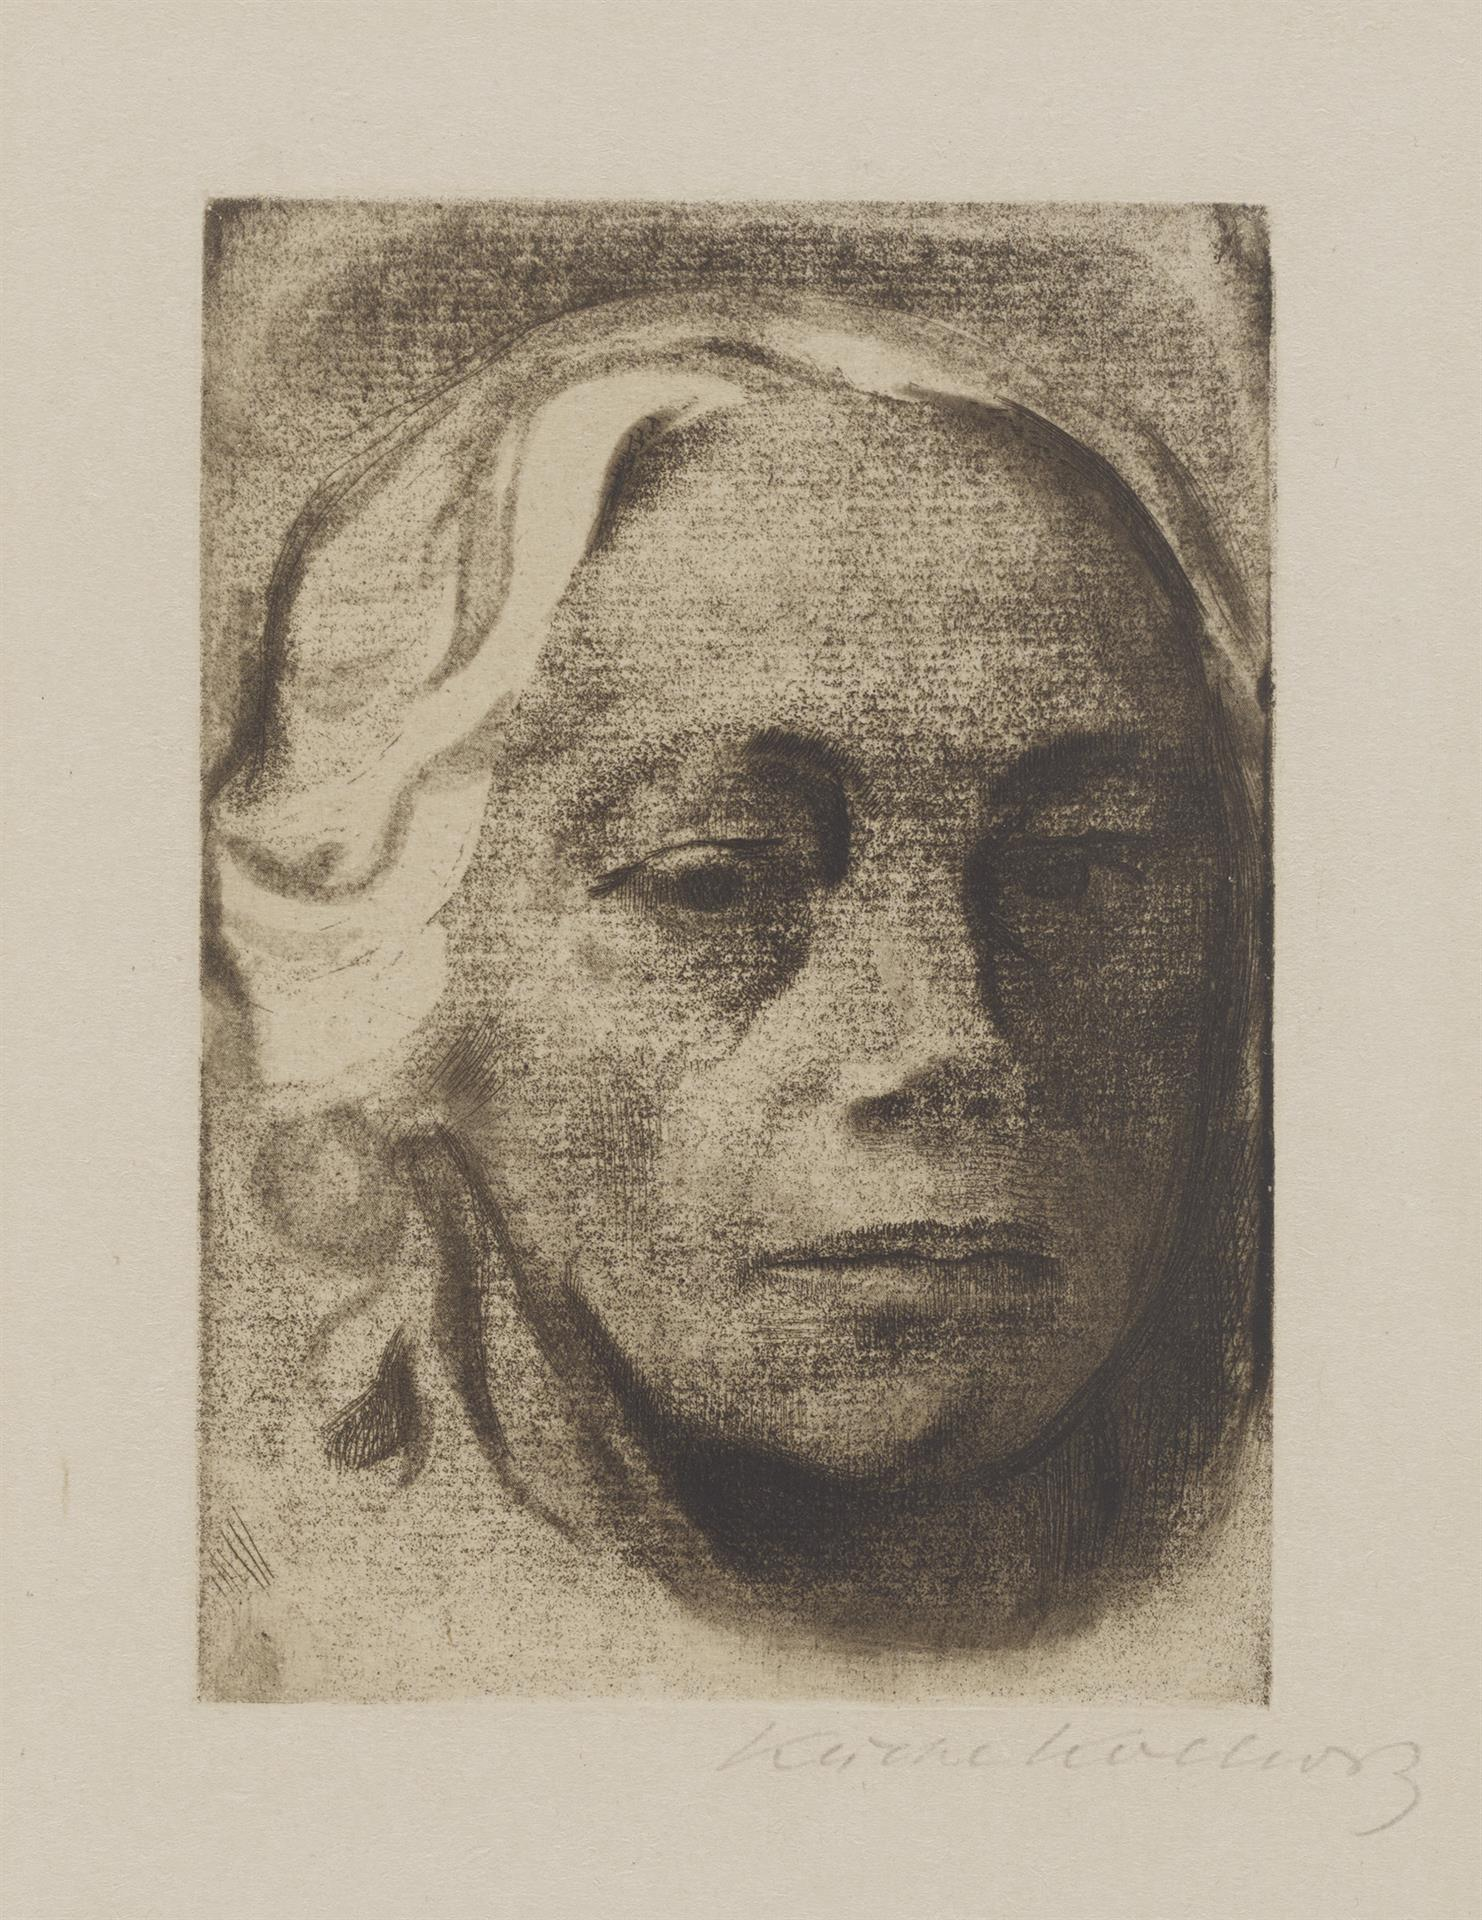 Käthe Kollwitz, Self-portrait, 1912, line etching, drypoint and soft ground with the imprint of laid paper and Ziegler's transfer paper, Kn 126 VII a, Cologne Kollwitz Collection © Käthe Kollwitz Museum Köln